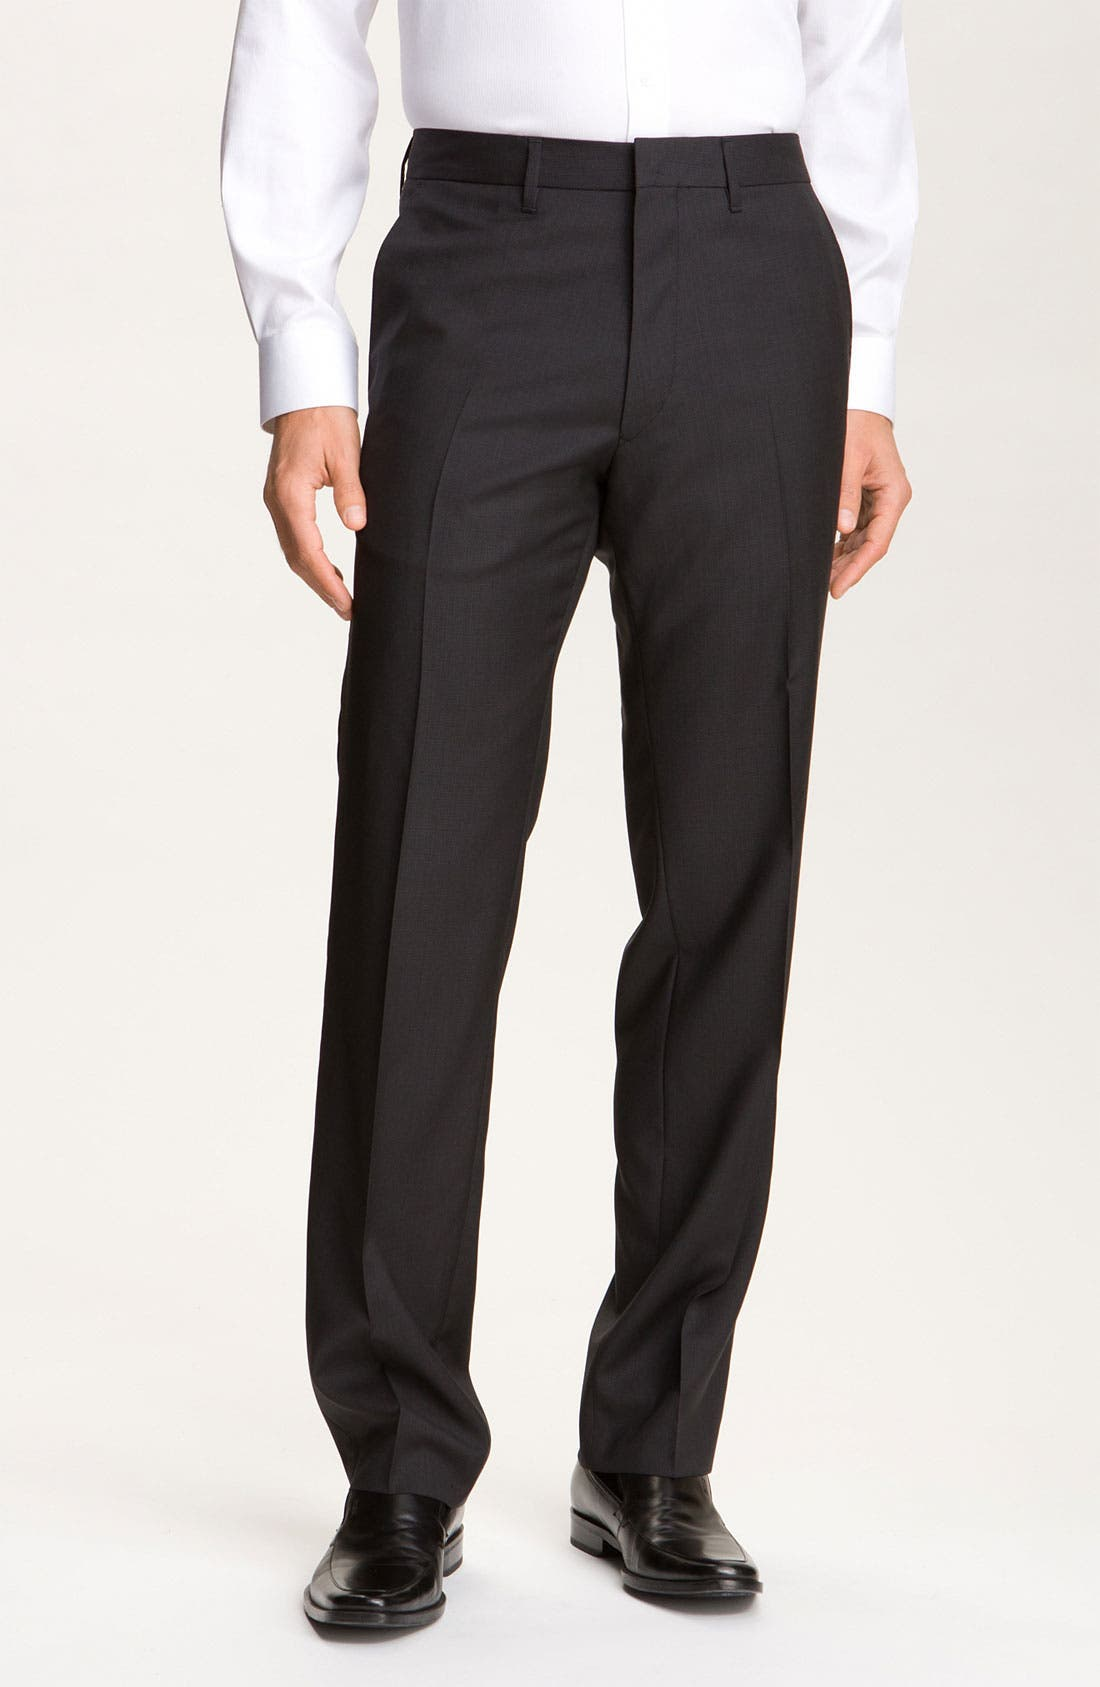 Alternate Image 1 Selected - BOSS Black 'Cagan Comfort Fit' Linen Blend Pants